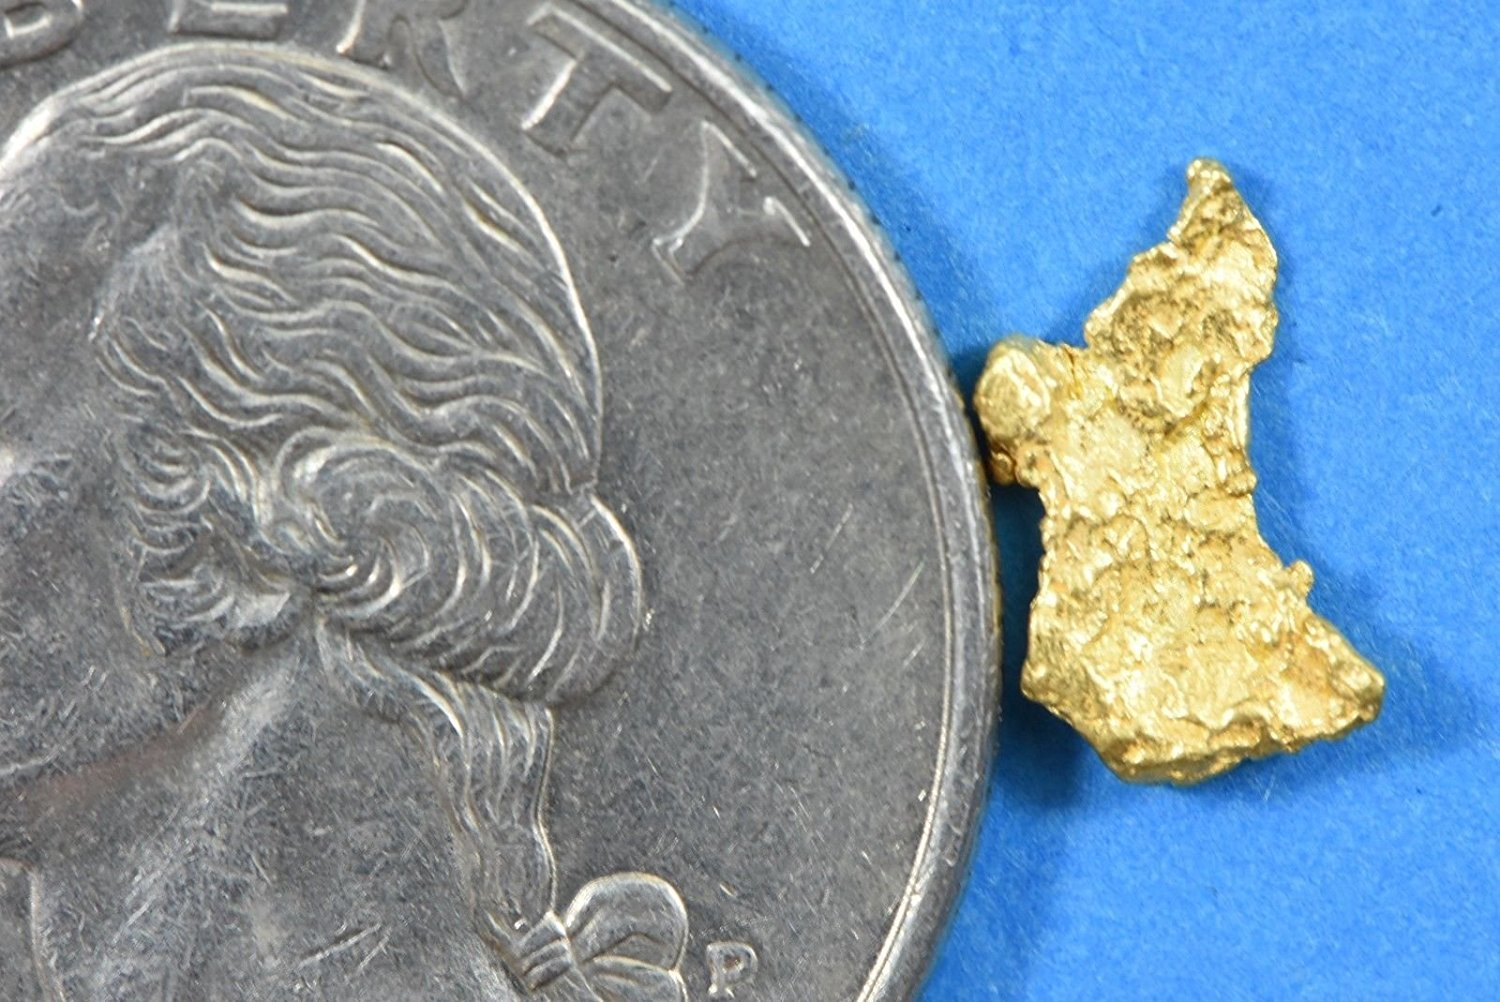 Alaskan-Yukon Bc Gold Rush Natural Nugget 0.27 Grams Genuine Alaska .10-.34